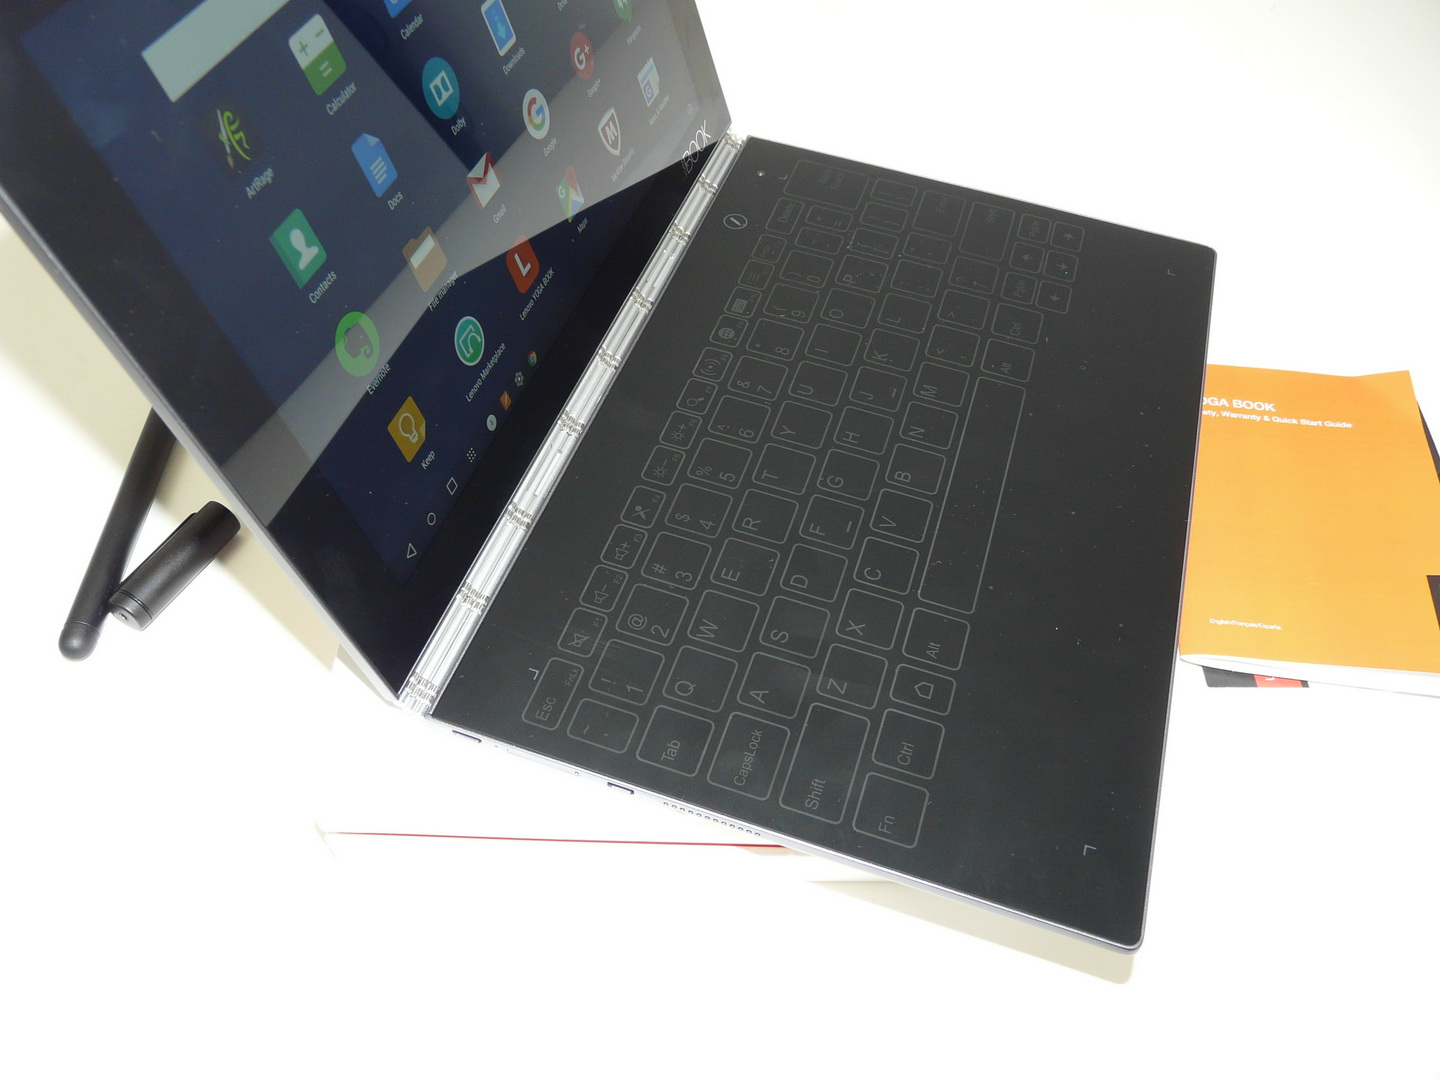 Lenovo Yoga Book Unboxing Android Stunning Machine With Virtual Keyboard Real Pen With Ink Video Tablet News